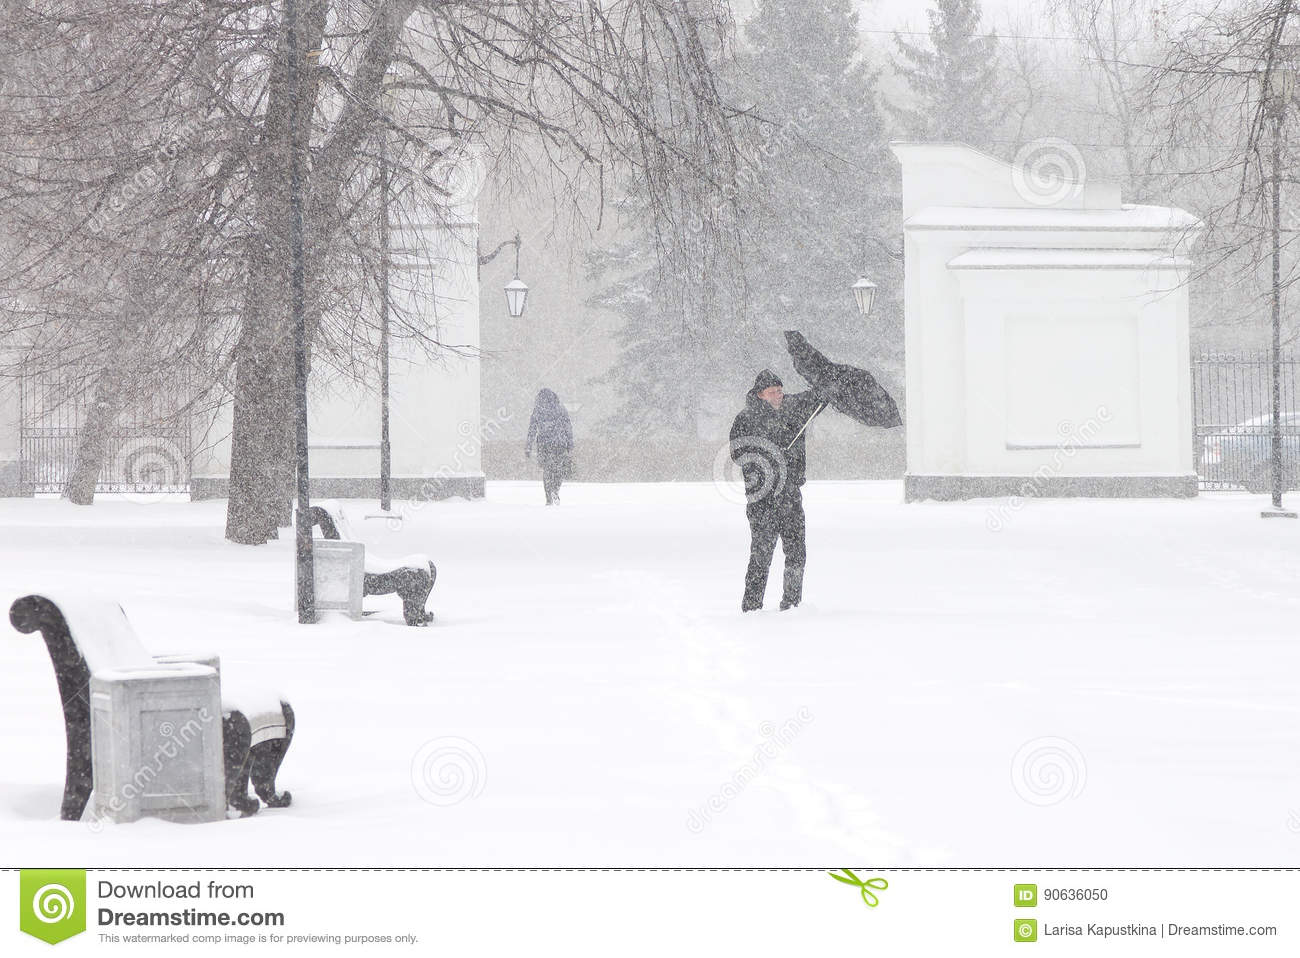 Bad weather in a city: a heavy snowfall and blizzard in winter